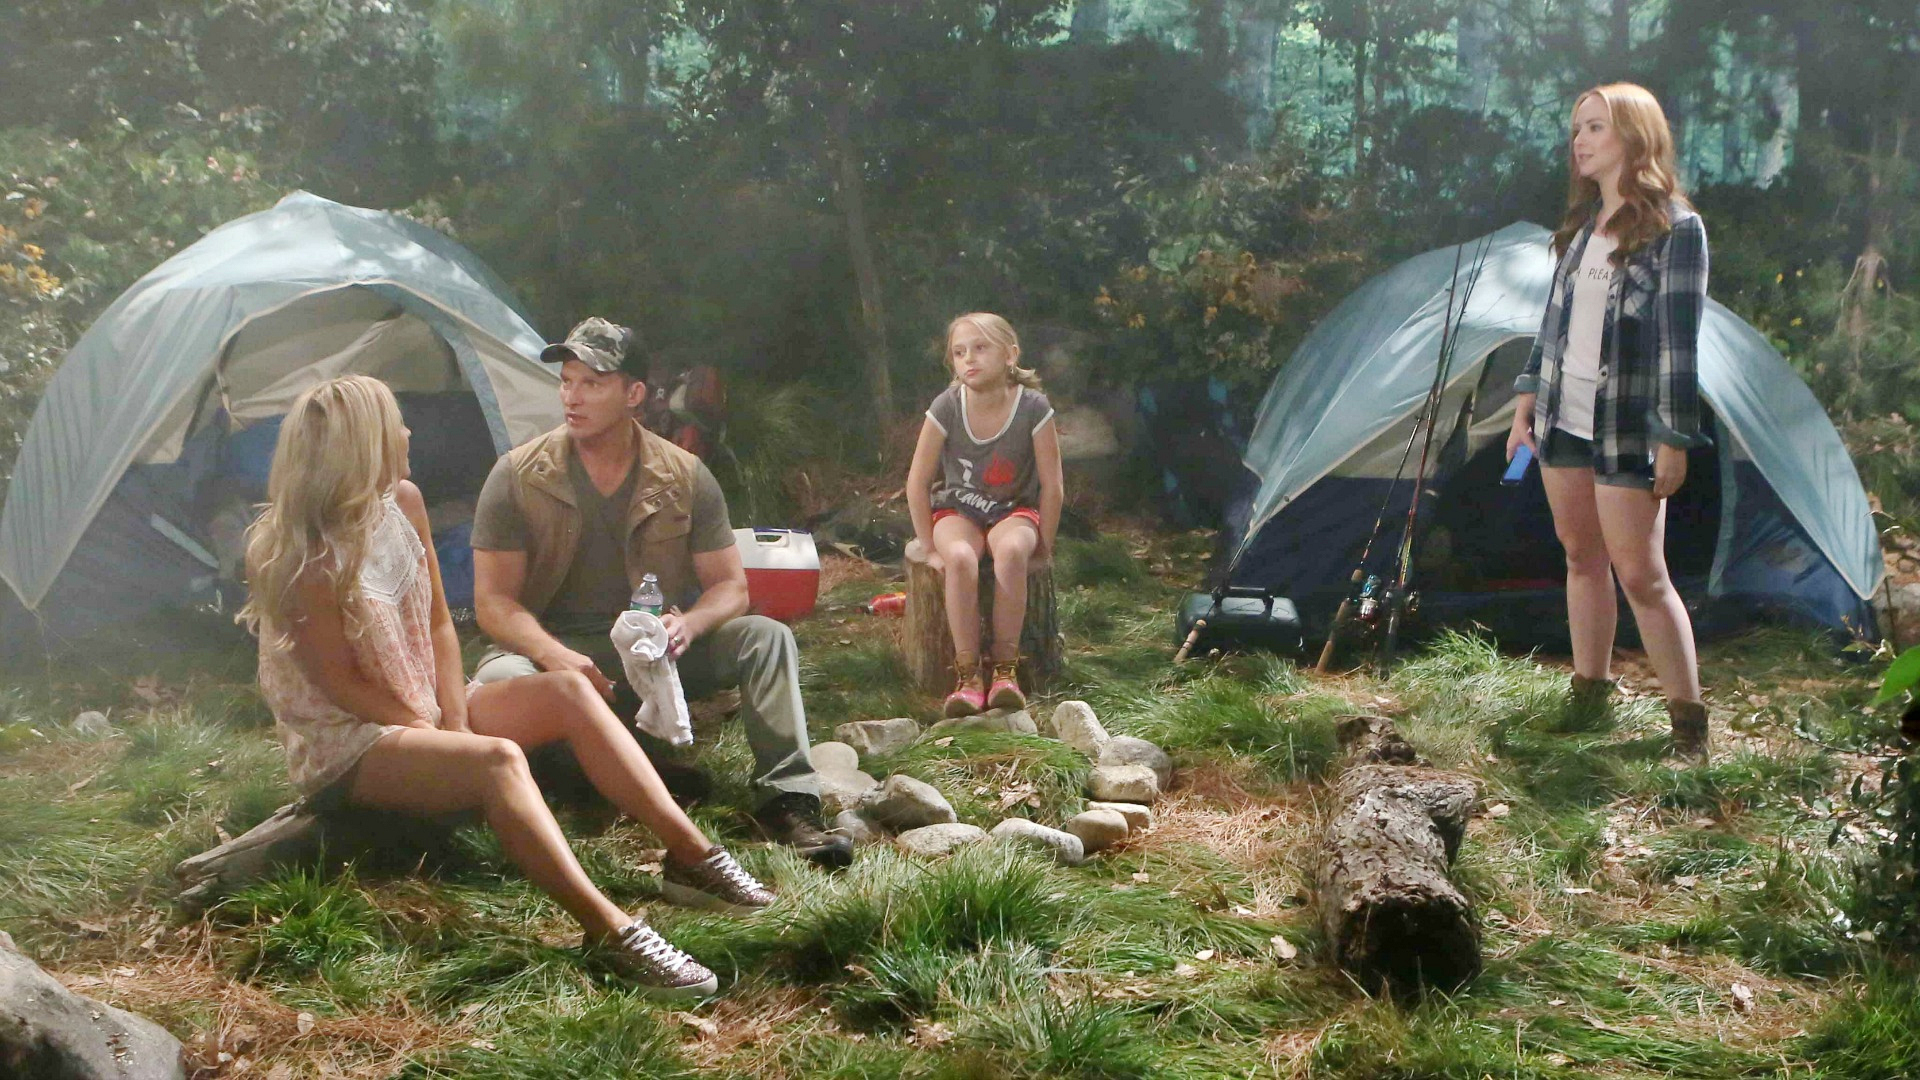 Dylan and Sharon plan a family camping trip.